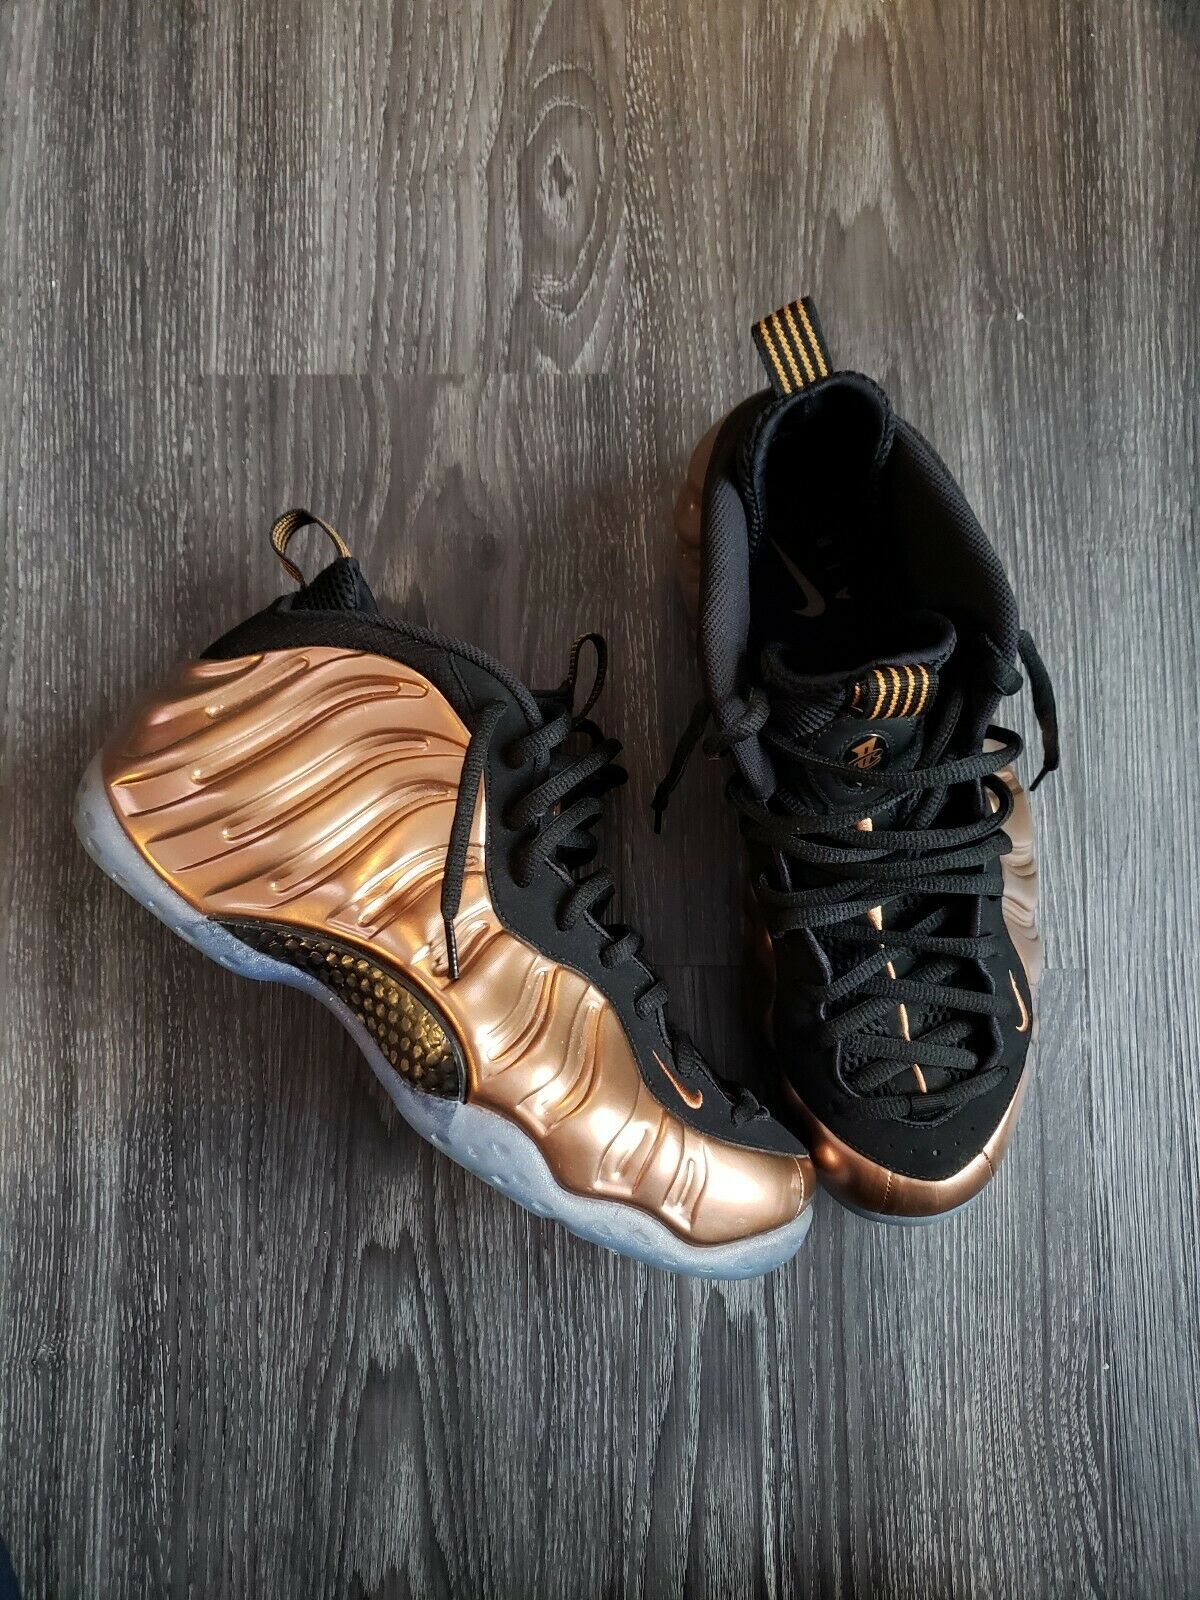 0d02a728557 Nike Air Foamposite One Copper 12 good condition in very nkzesy2041 ...